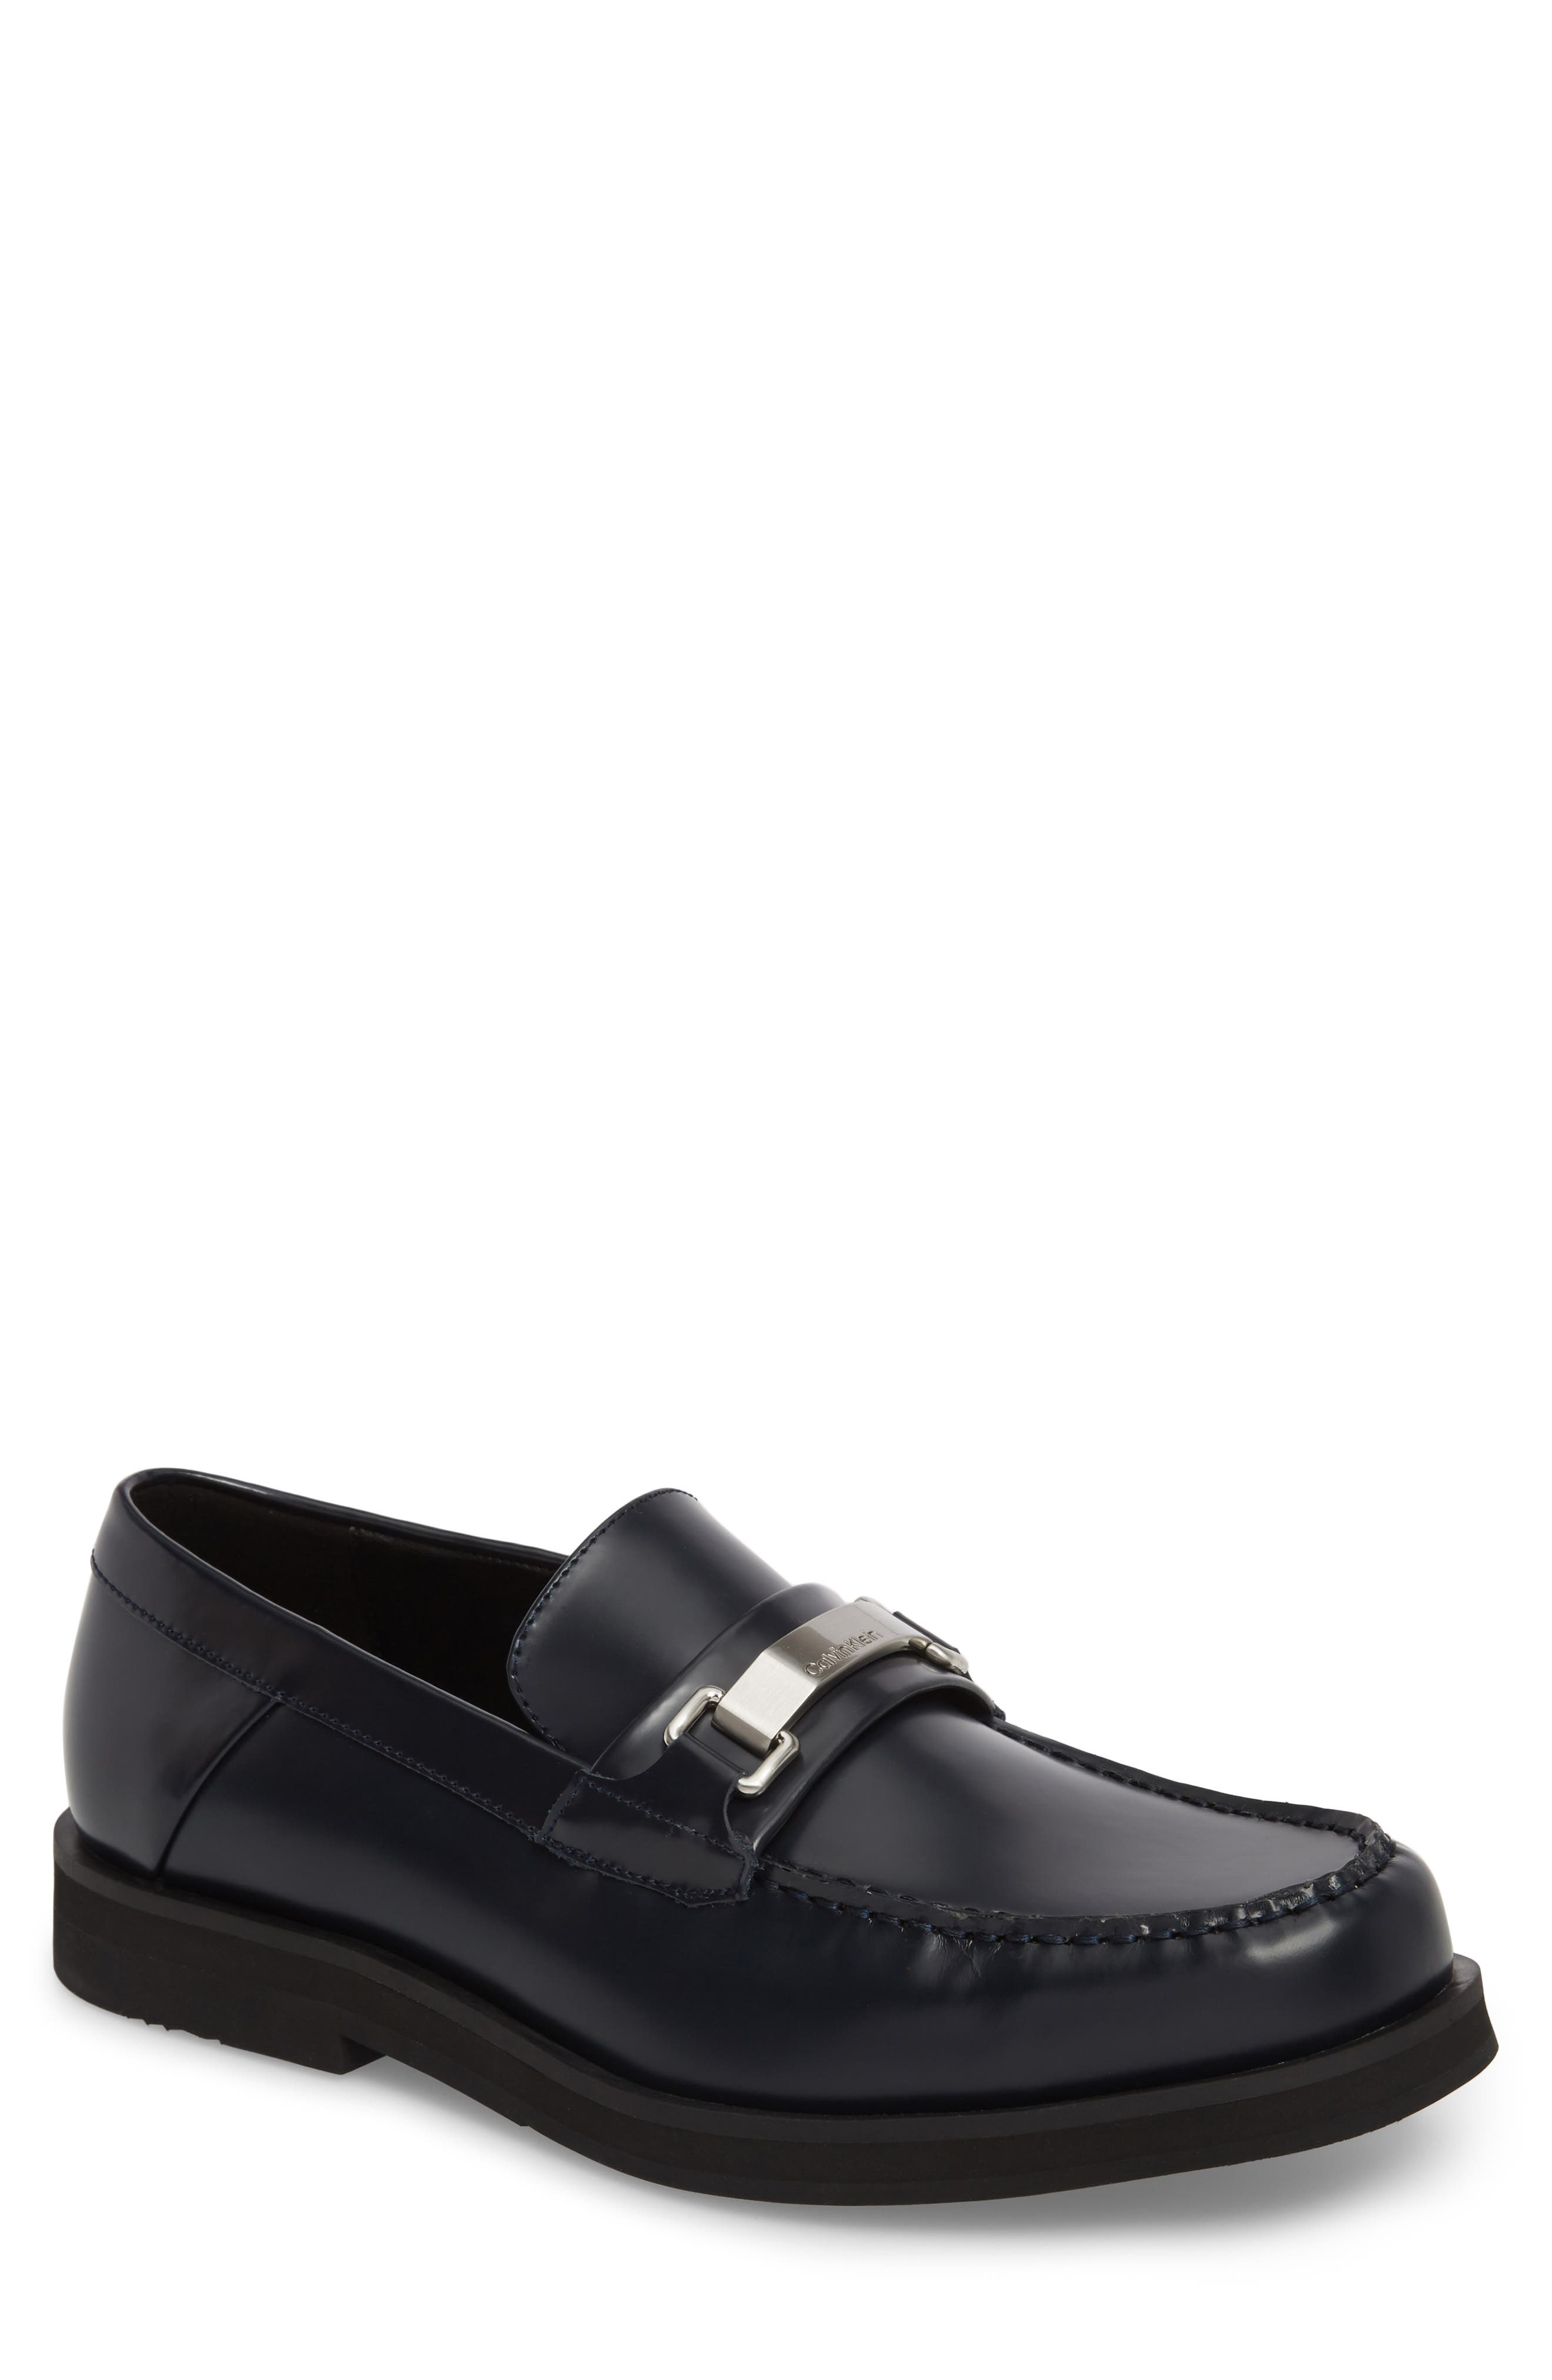 Lyric Box Bit Loafer,                         Main,                         color, Dark Navy Leather